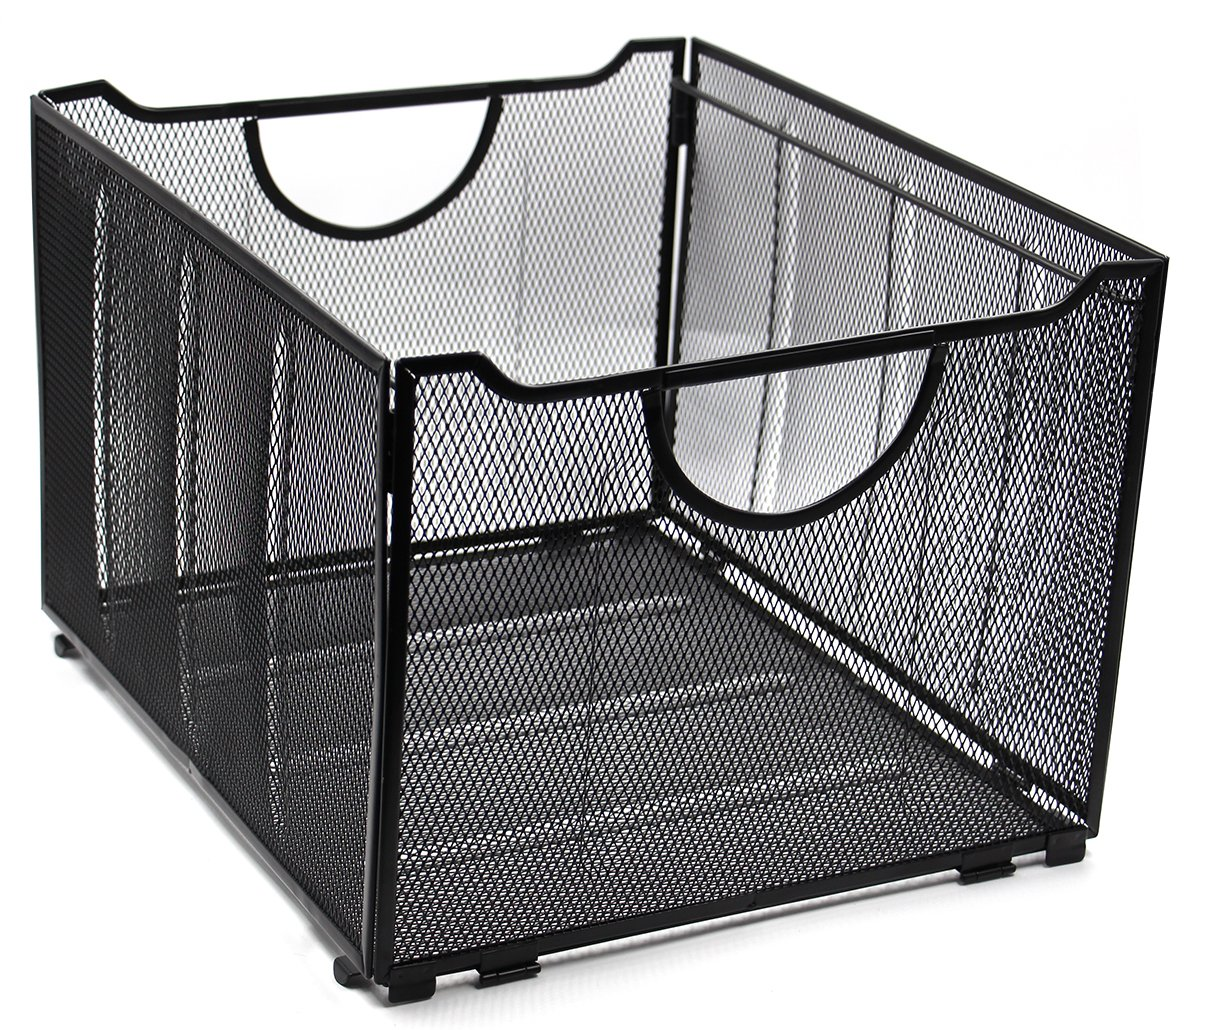 EasyPAG Mesh File Box/Foldable Storage Crate Box 12 x 9-1/4 inch, Black OP-1626